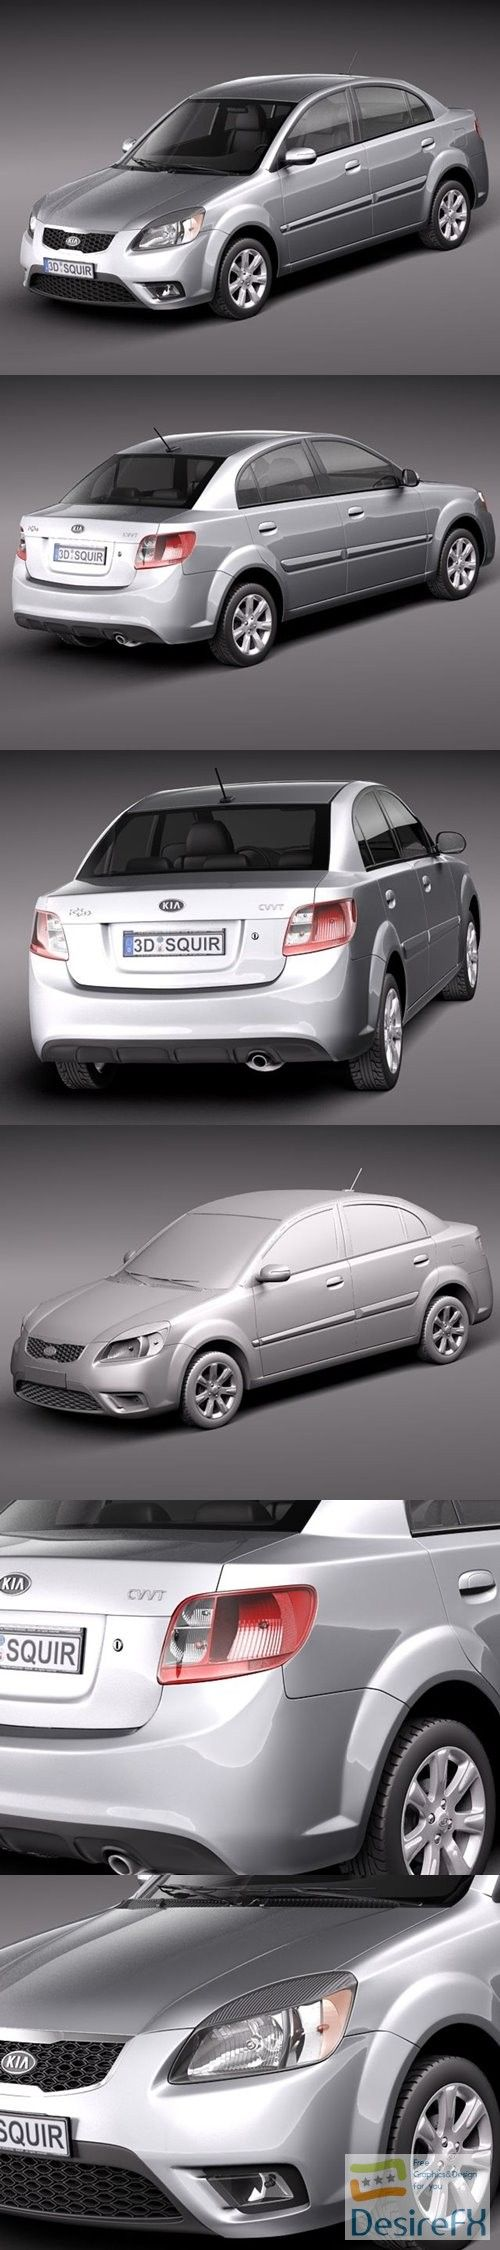 Pin By Gfxpiner On 3d Models Kia Rio Sedan Kia Rio Model